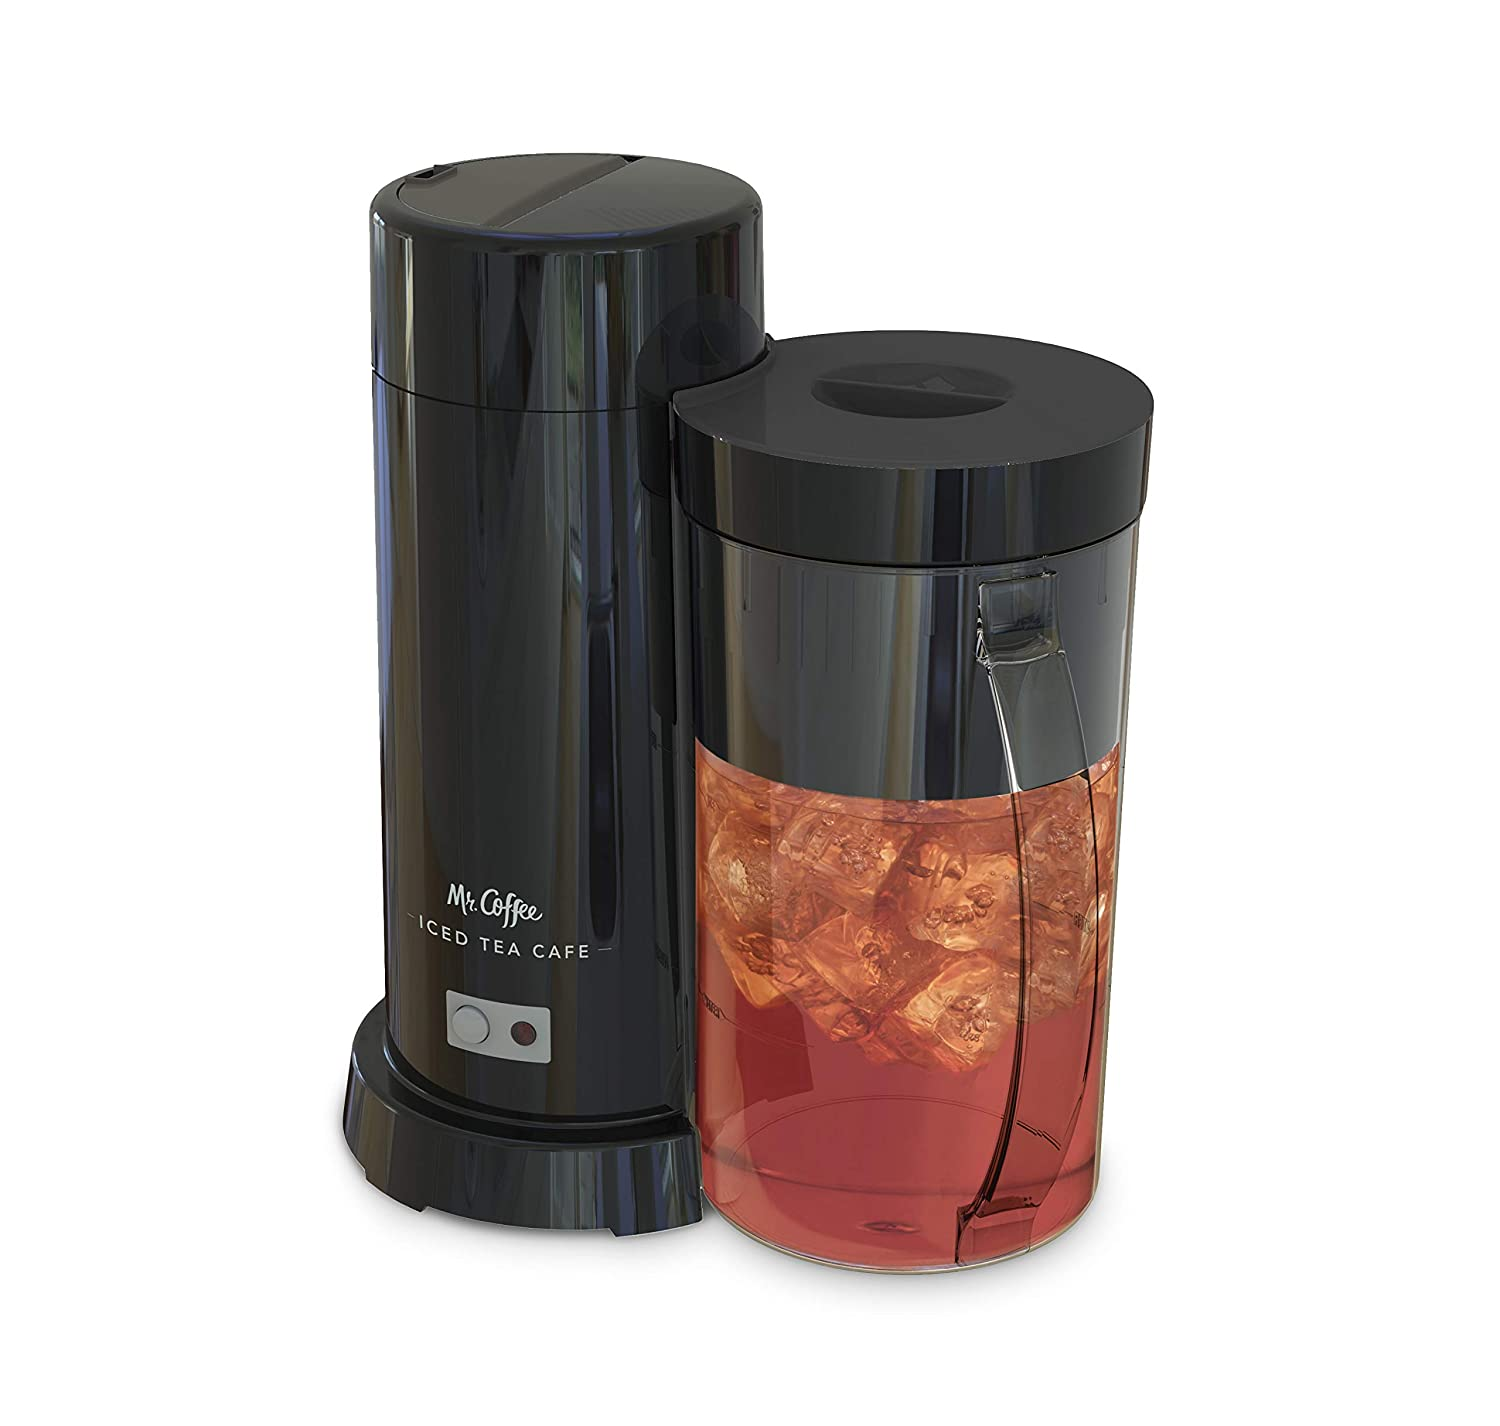 Mr. Coffee 2-Quart Iced Tea & Iced Coffee Maker, Black